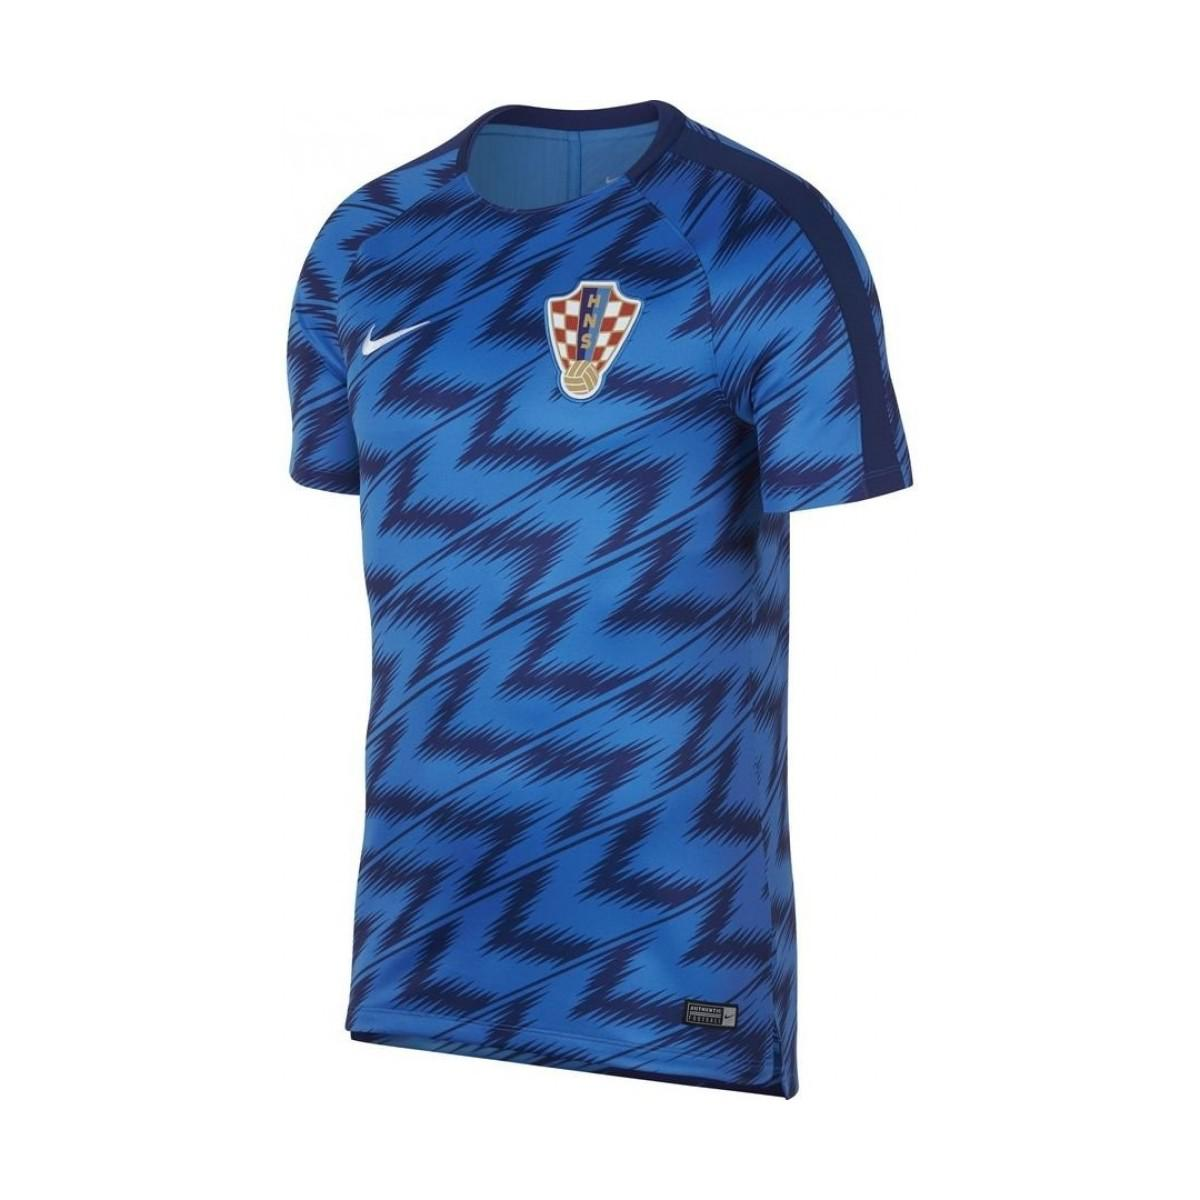 Nike 2018-2019 Croatia Pre-match Training Shirt Men s T Shirt In ... 01e65274e